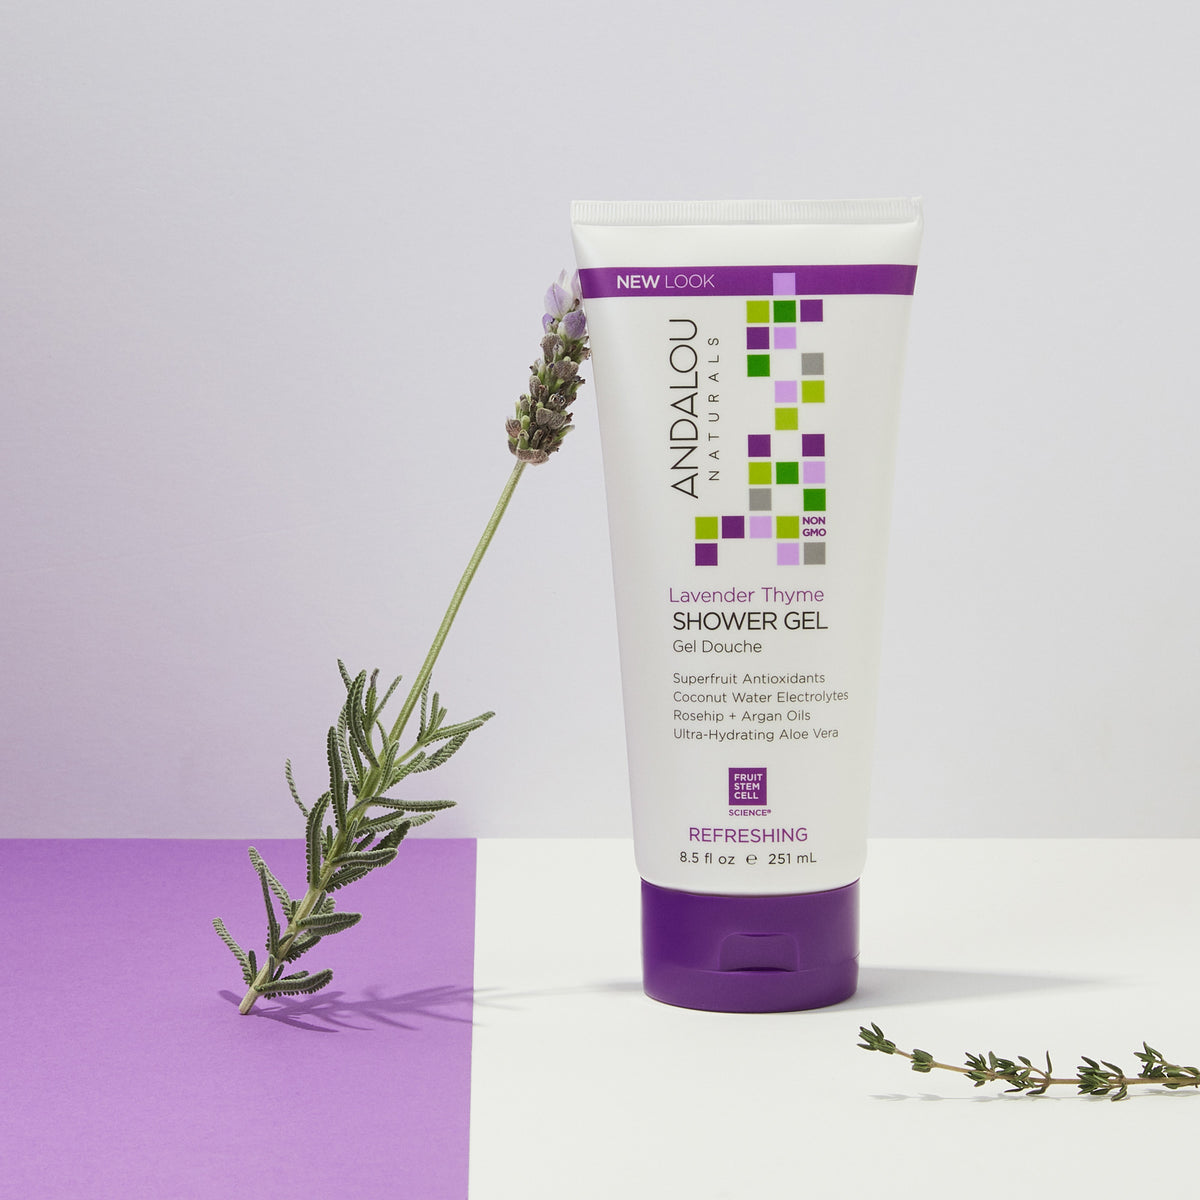 Lavender Thyme Refreshing Shower Gel